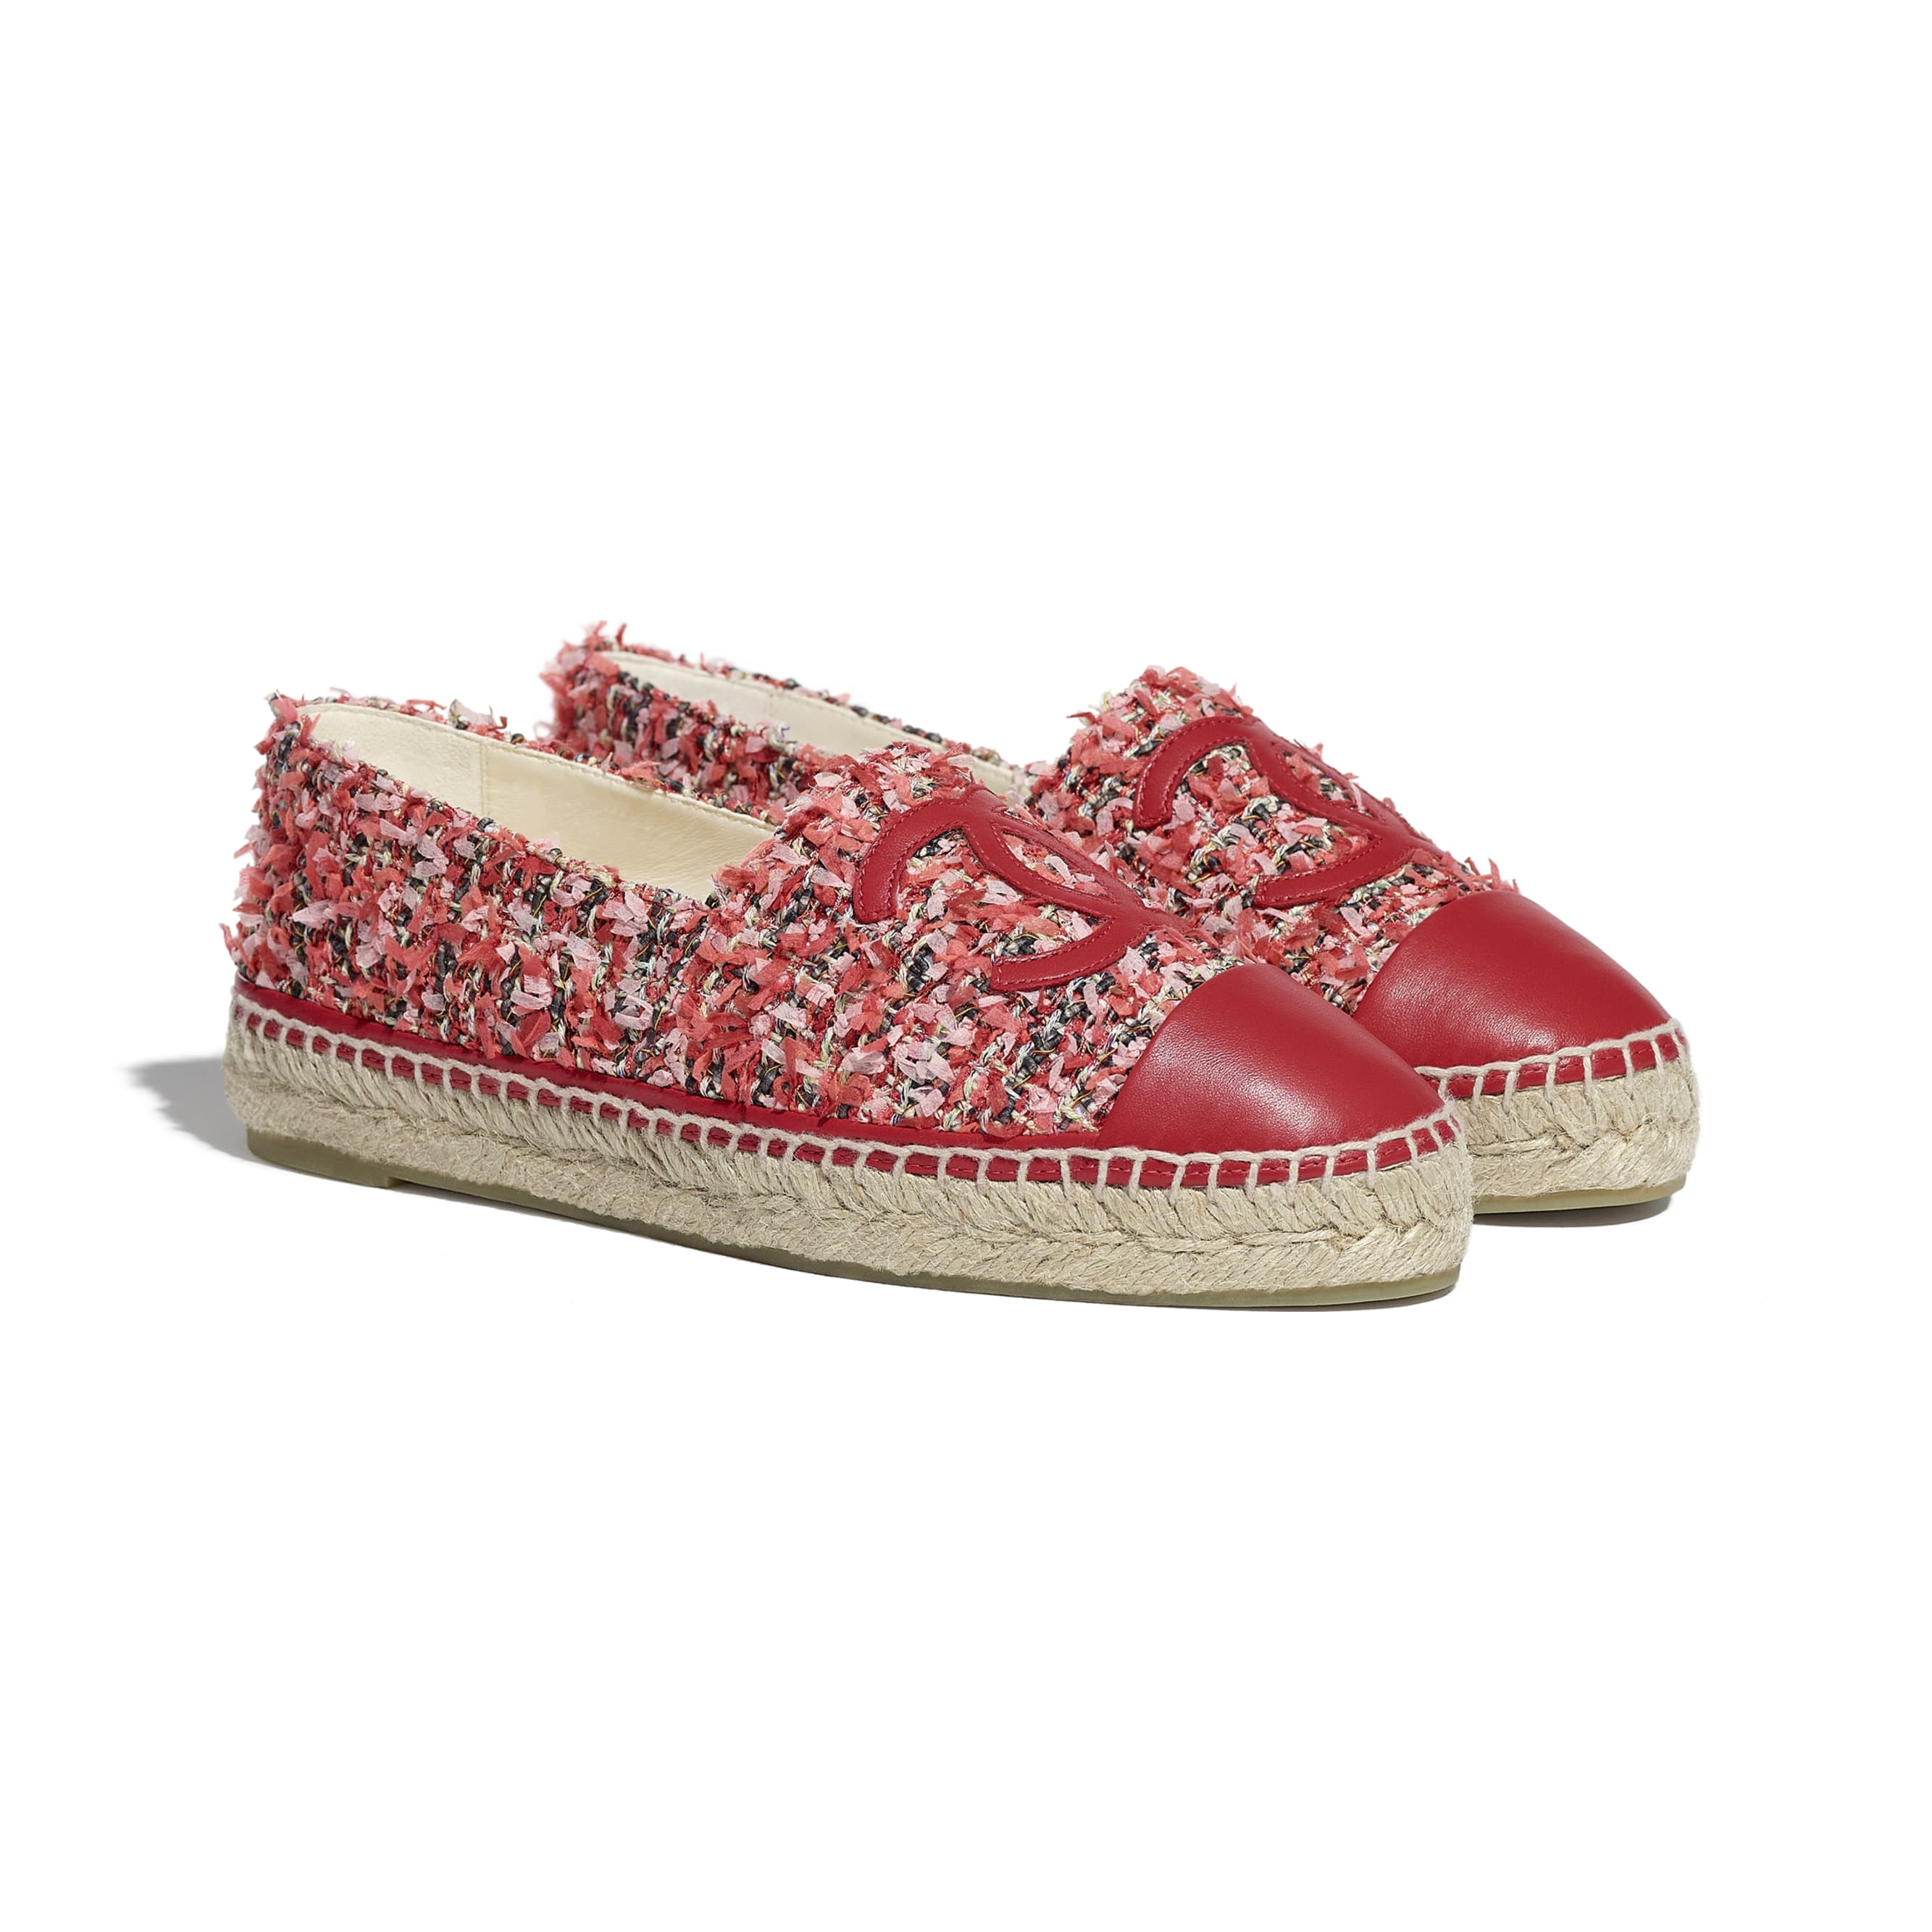 Espadrilles - Coral, Pink, Black & Red - Tweed & Lambskin - CHANEL - Alternative view - see standard sized version